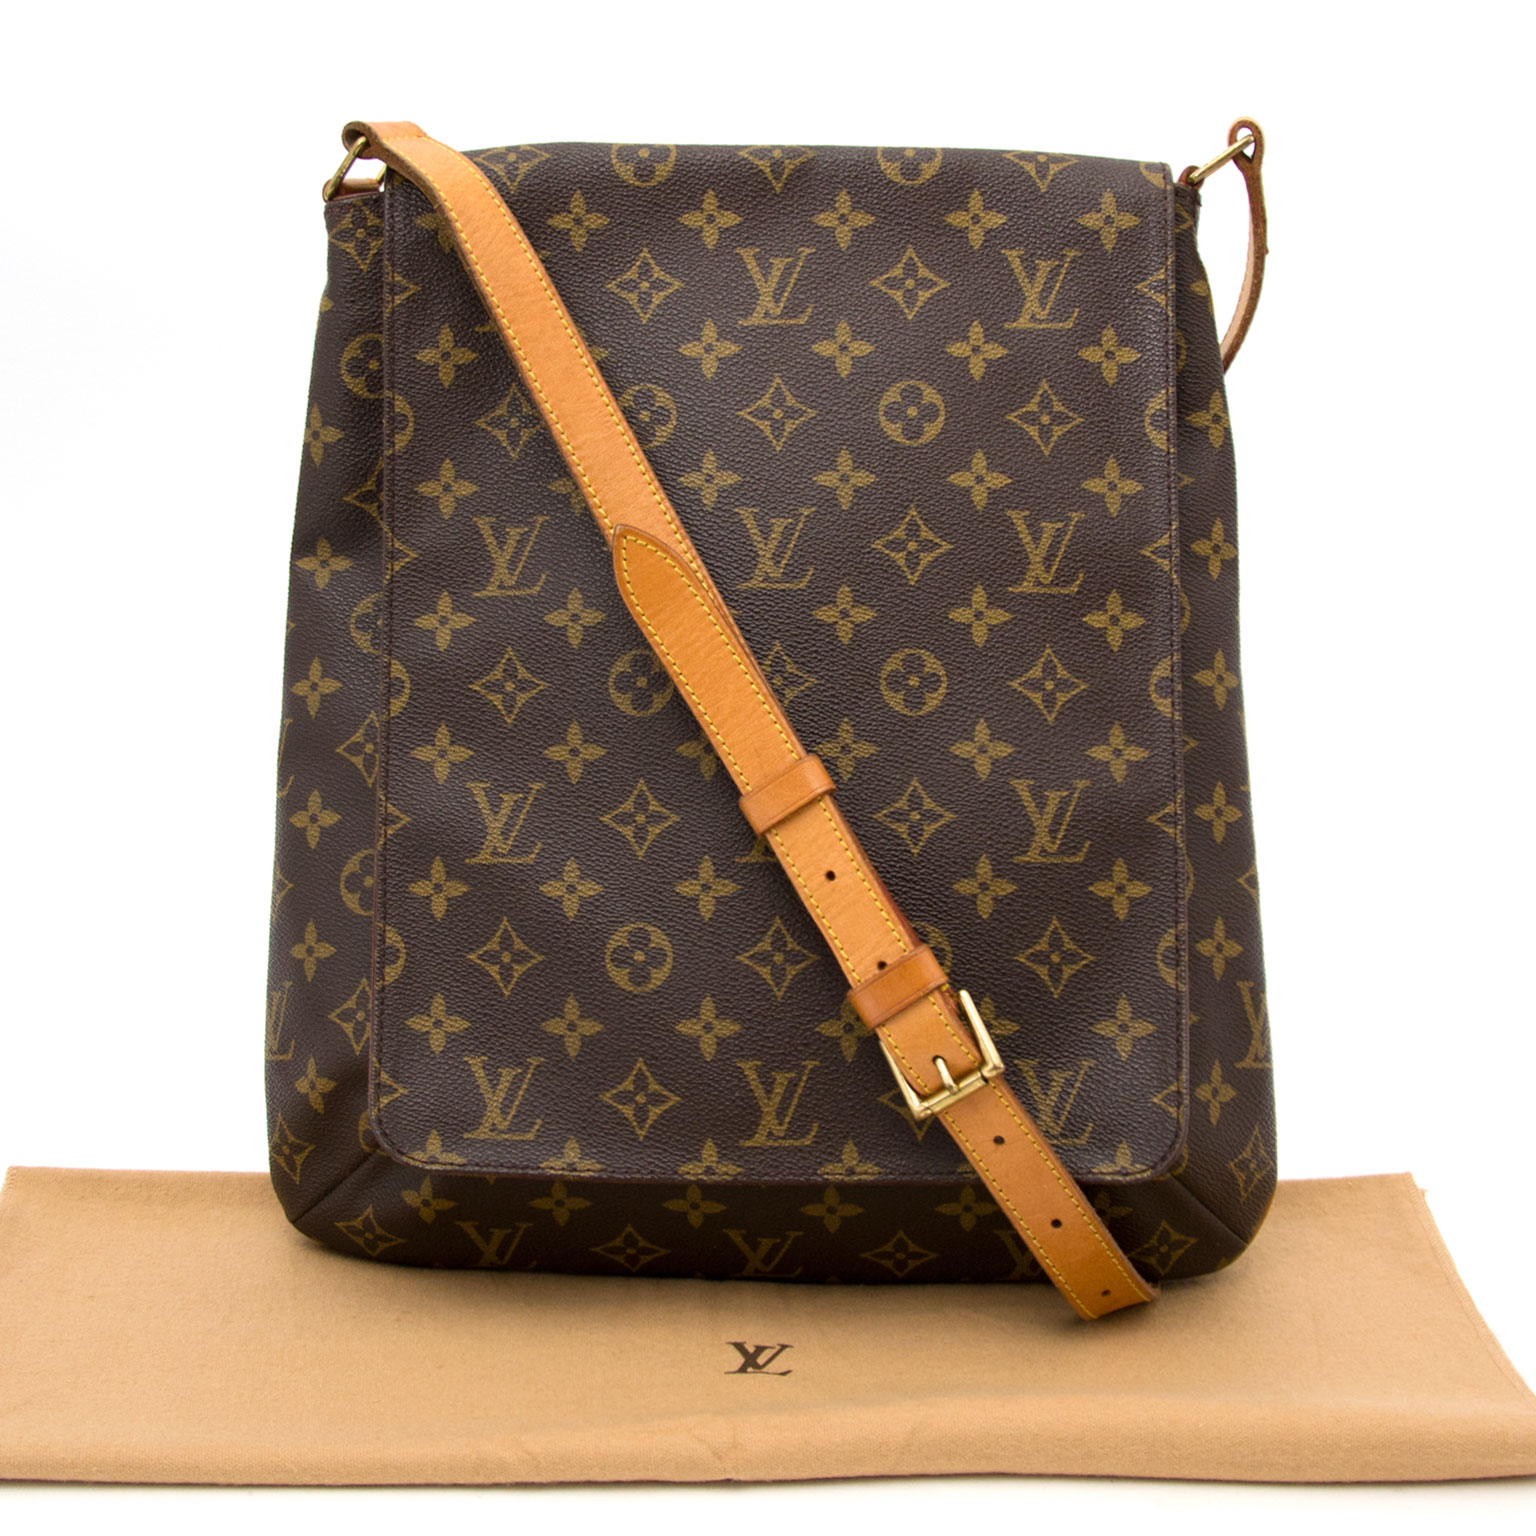 Acheter un Louis Vuitton Monogram Musette Large Messenger chez Labellov